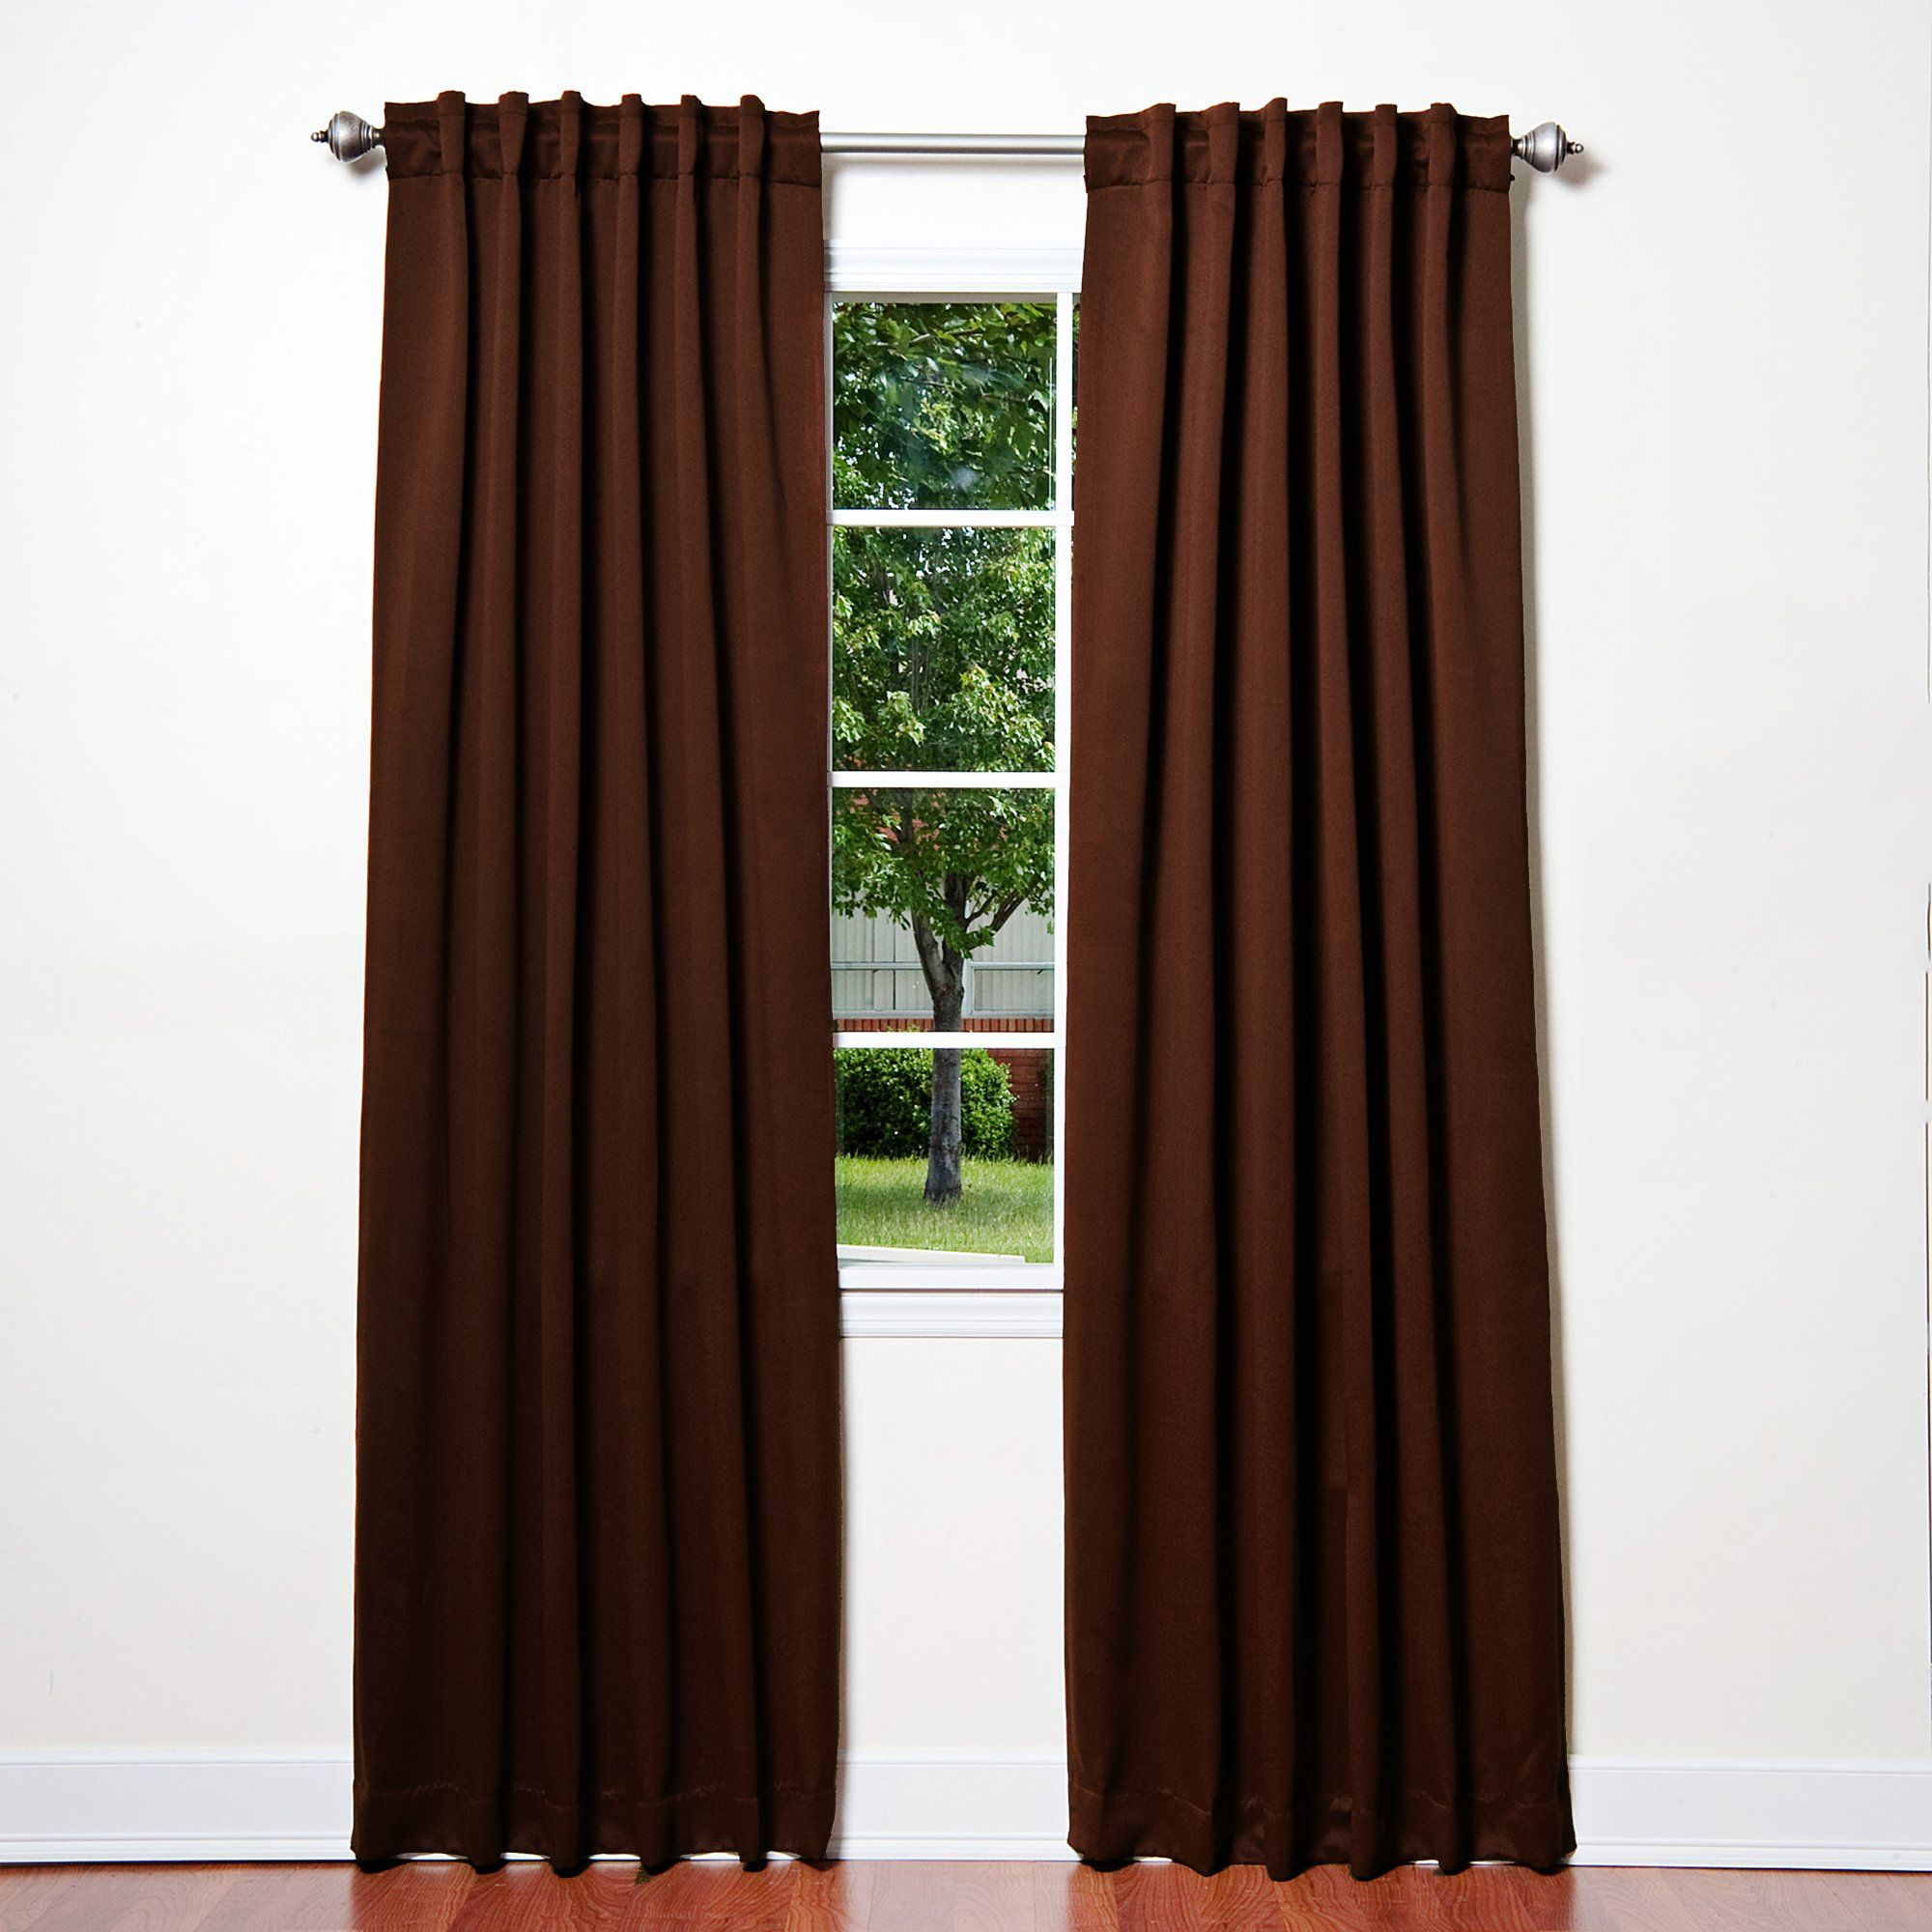 """Amazon.com - Best Home Fashion Thermal Insulated Blackout Curtains - Back Tab/ Rod Pocket - Olive - 52""""W x 84""""L - (Set of 2 Panels) - Window Treatment Curtains"""